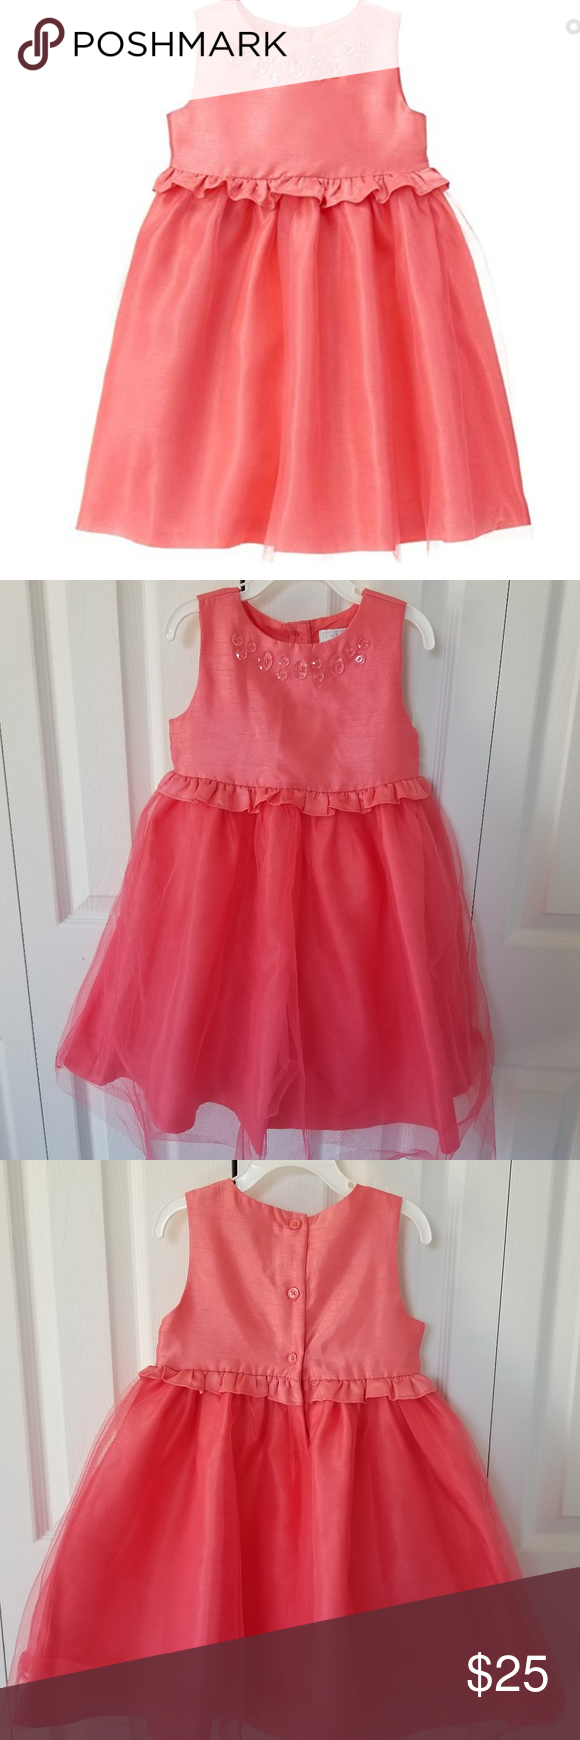 Gymboree Dressed Up Coral Party Dress 4t Gymboree Dresses Party Dress Dress Up [ 1740 x 580 Pixel ]